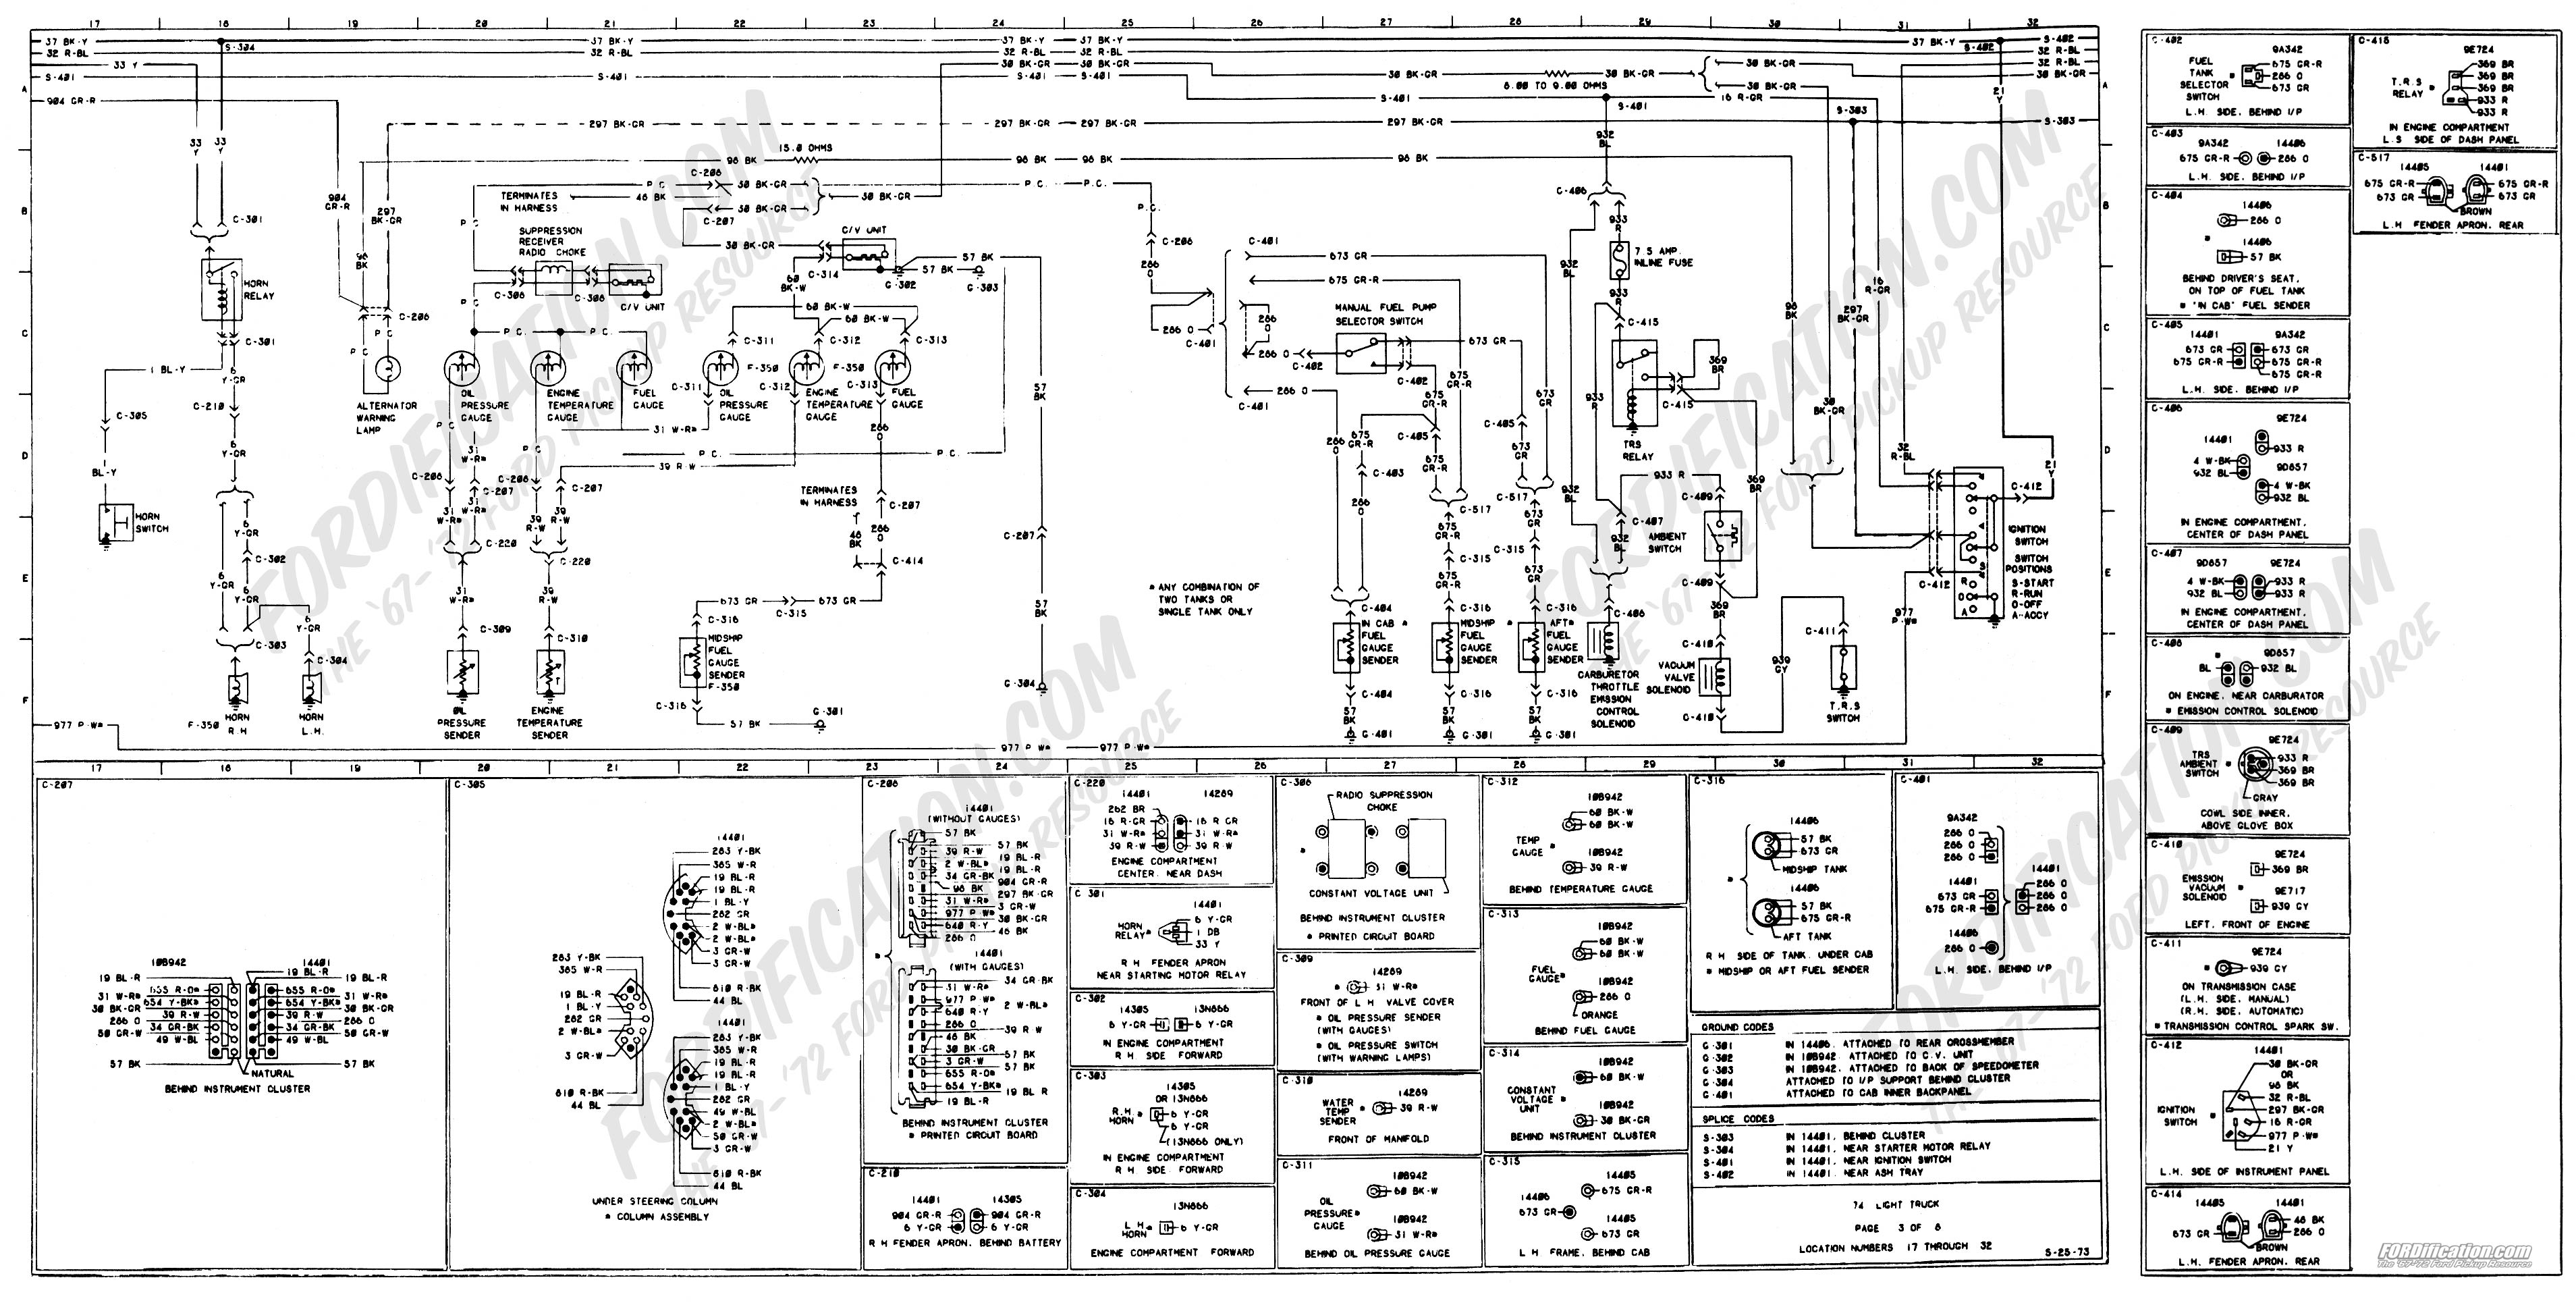 1973 1979 Ford Truck Wiring Diagrams Schematics 1 Wire Alternator Diagram For 1970 Chevy Page 03